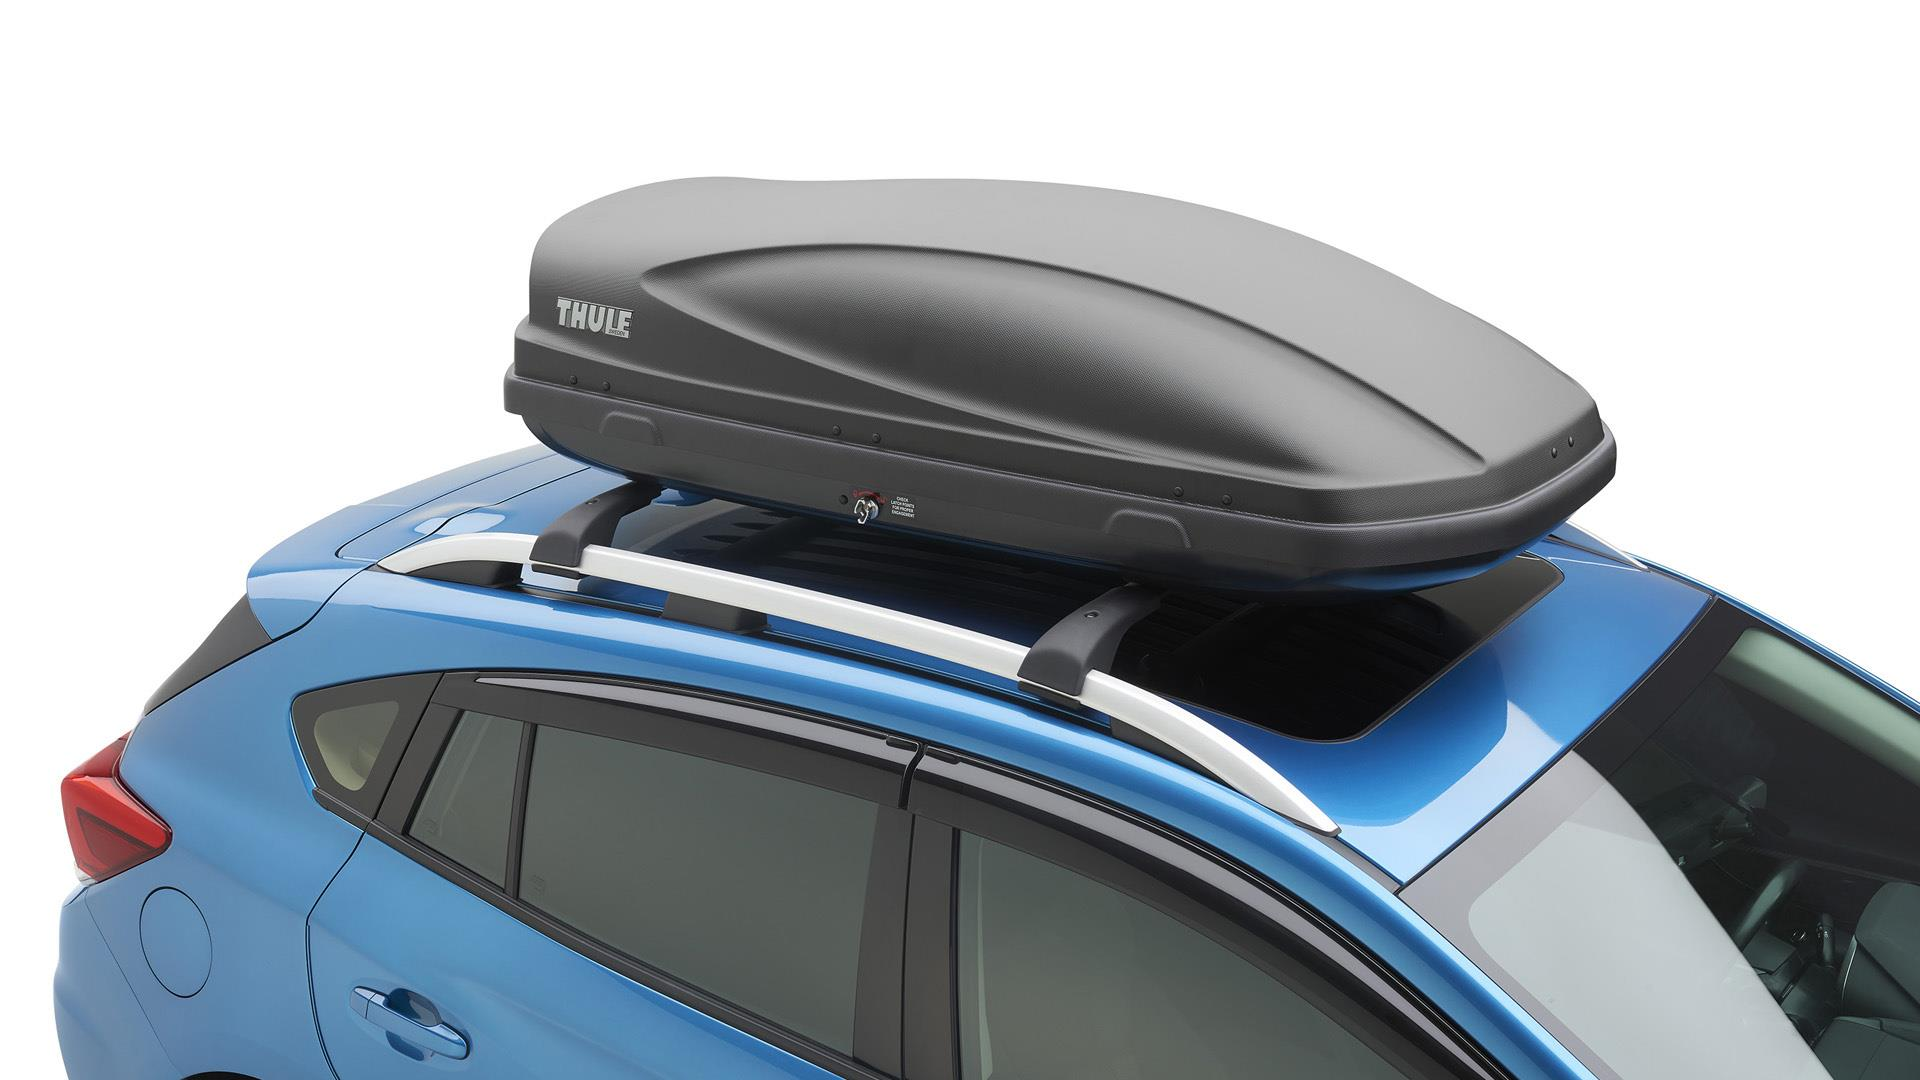 2017 Subaru Outback Roof Cargo Carrier Provides